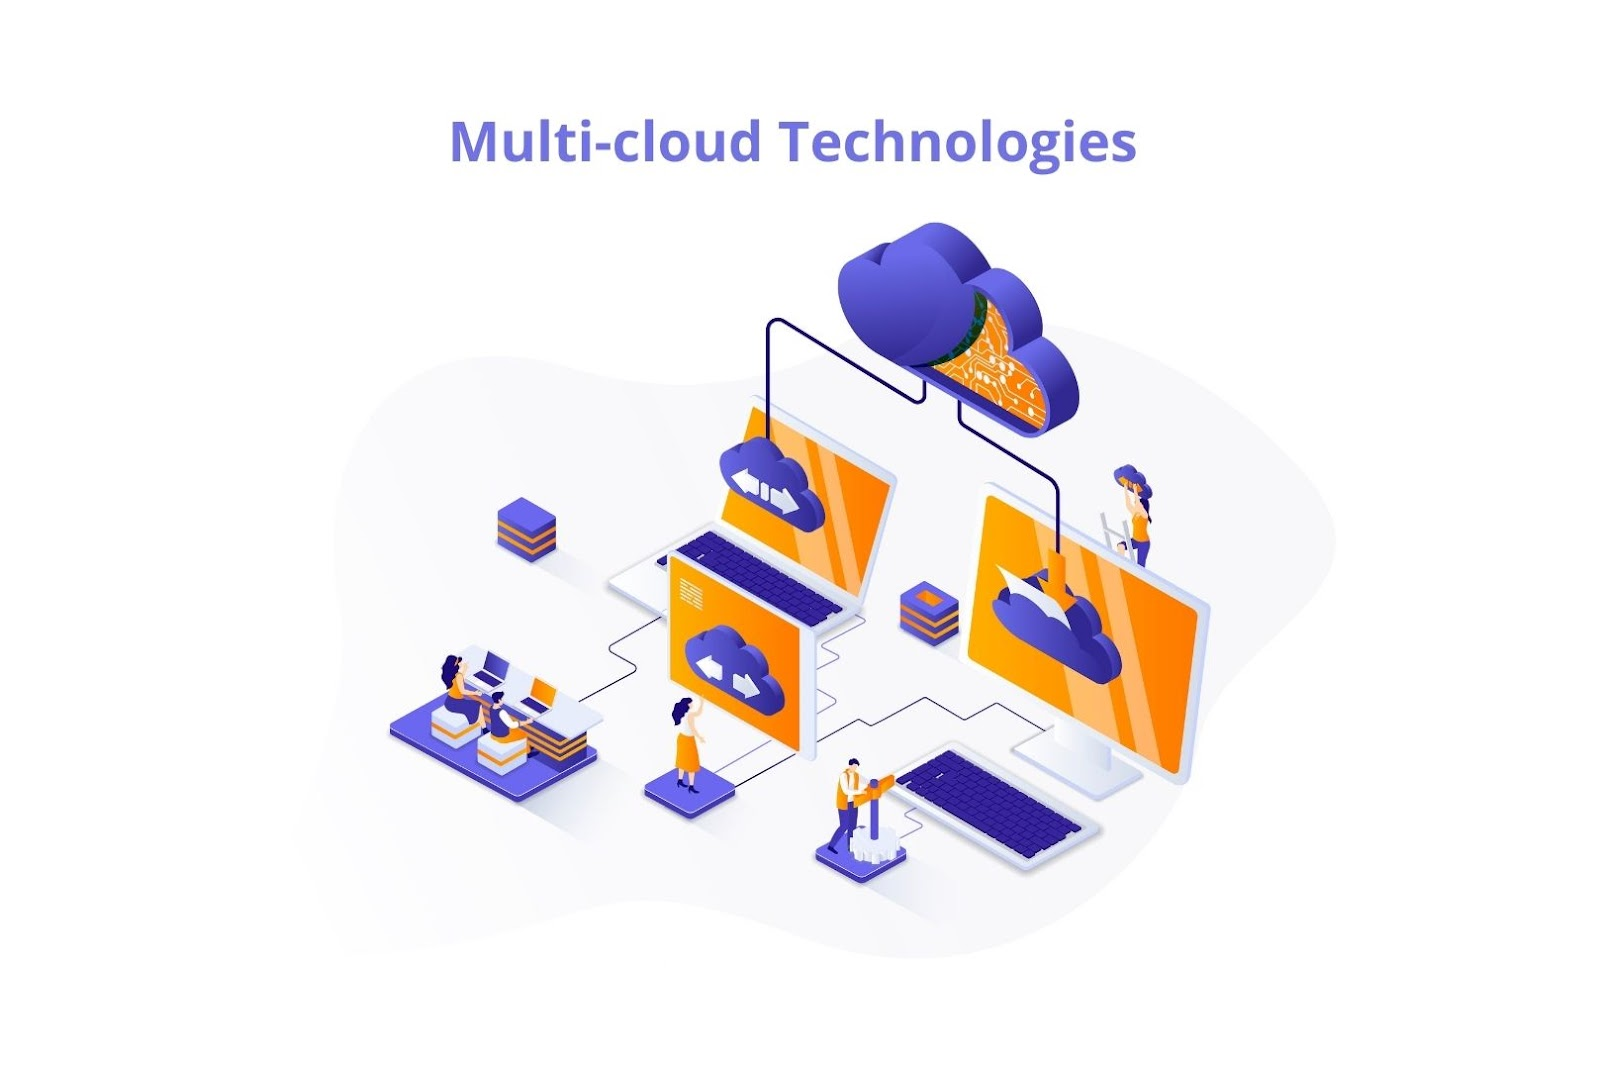 Multi-cloud Technologies